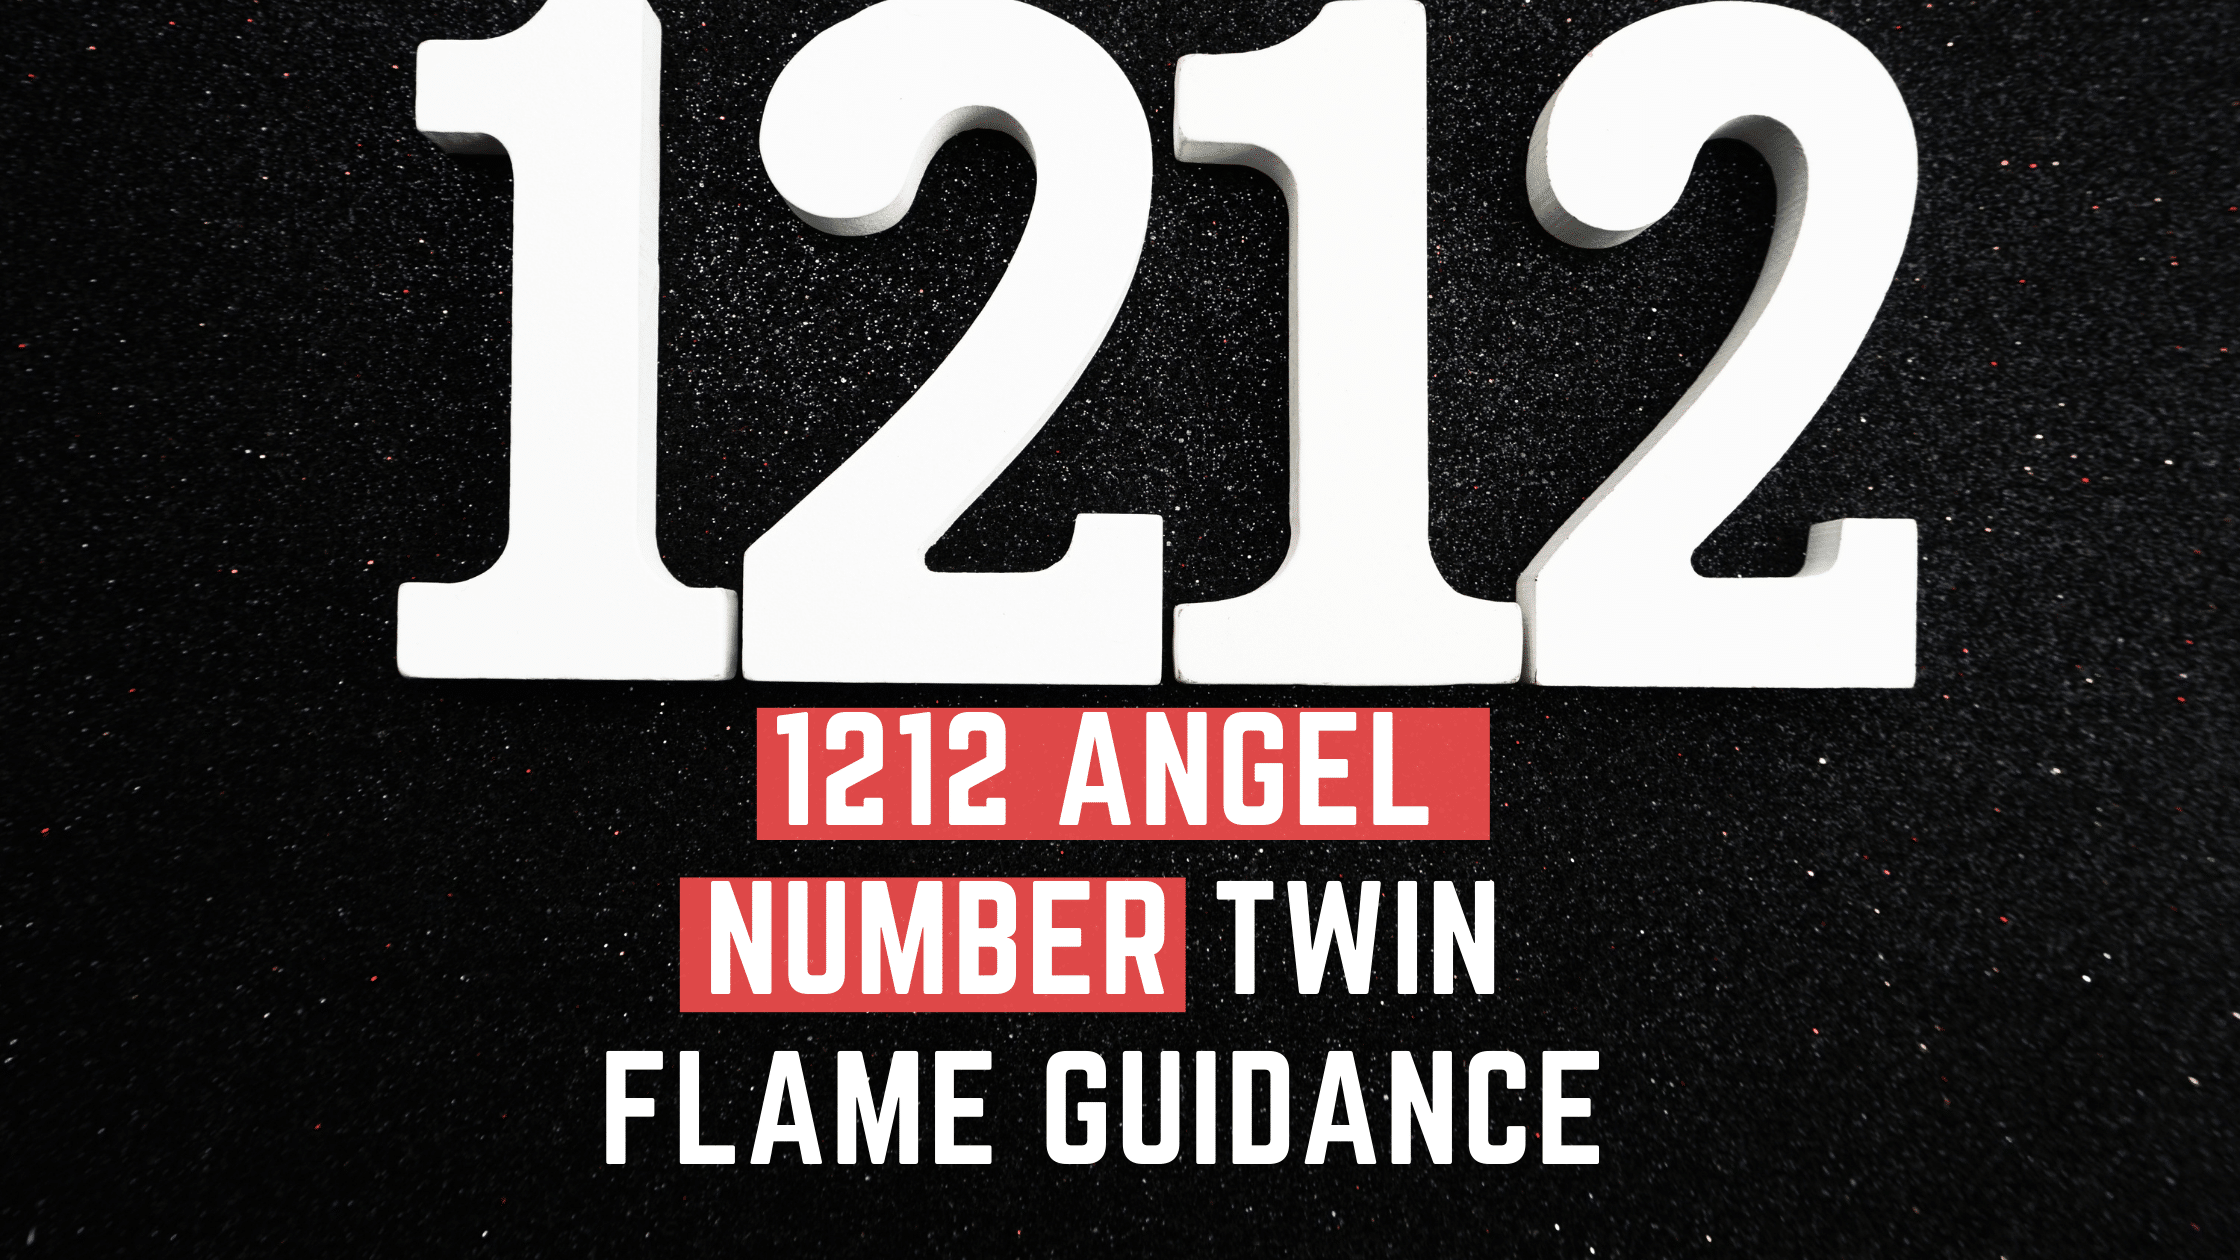 1212 Angel Number Twin Flame